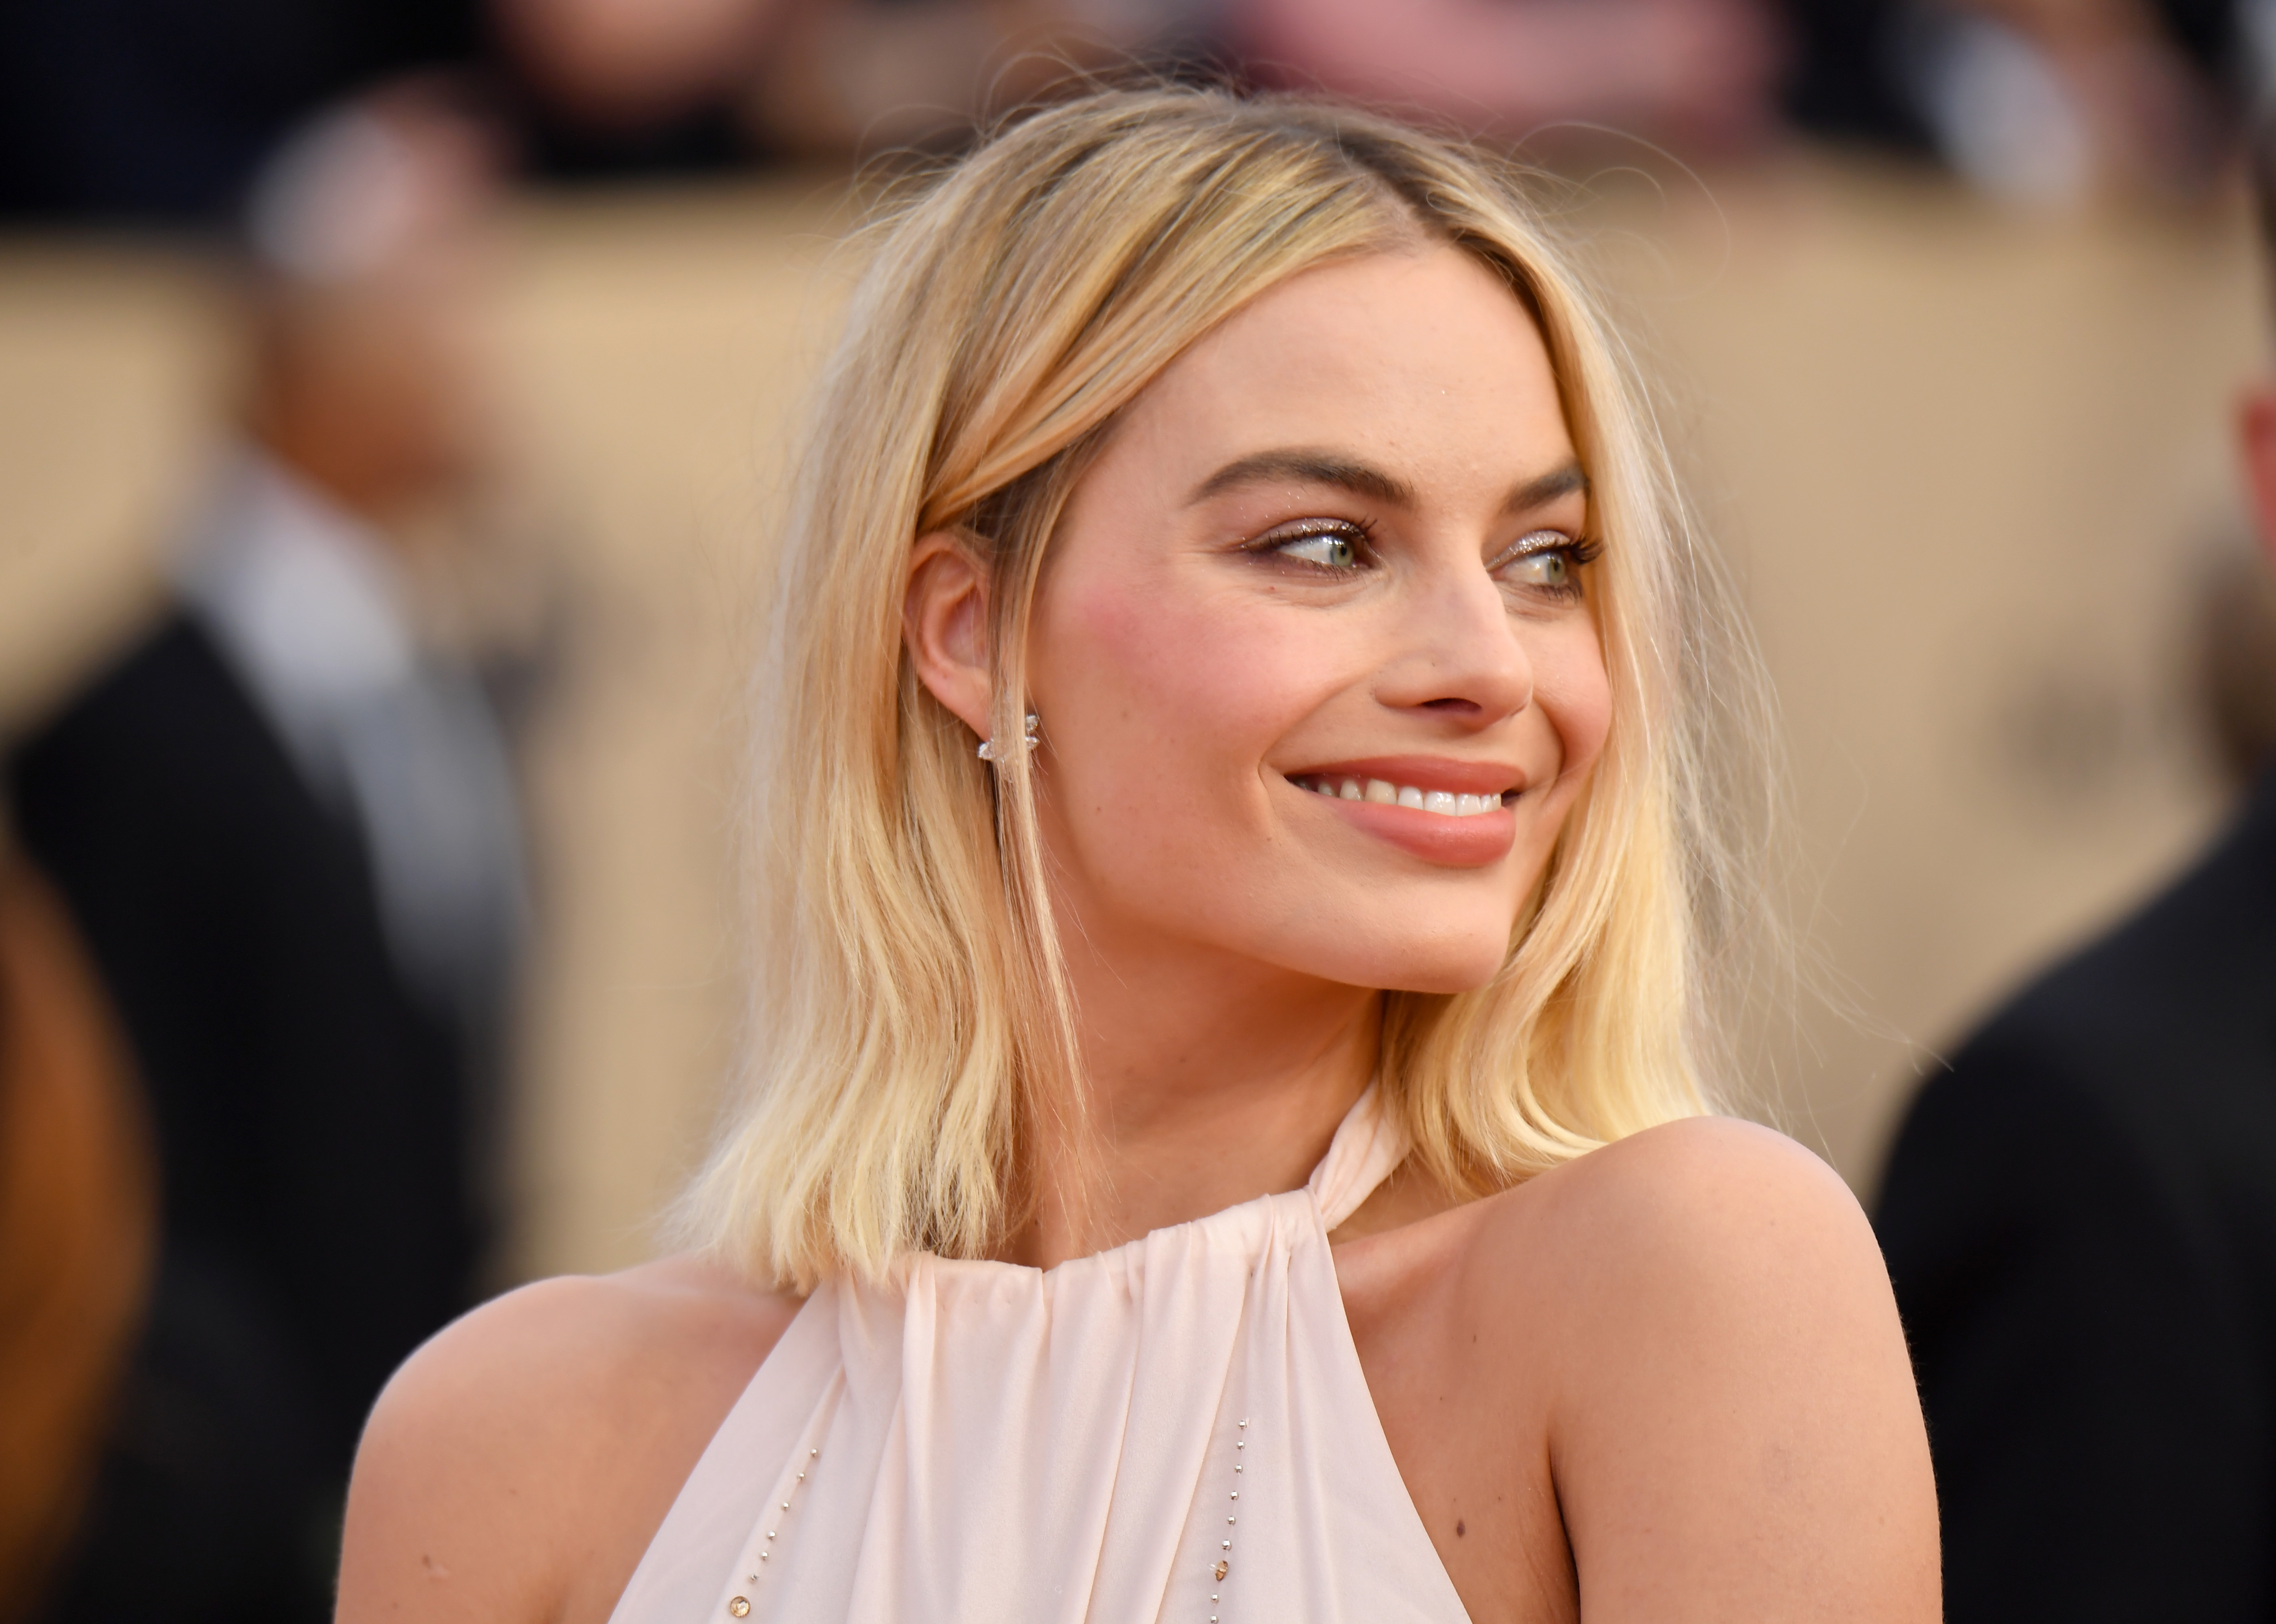 Margot Robbie looks like a pink feathered swan at the 2018 SAG Awards